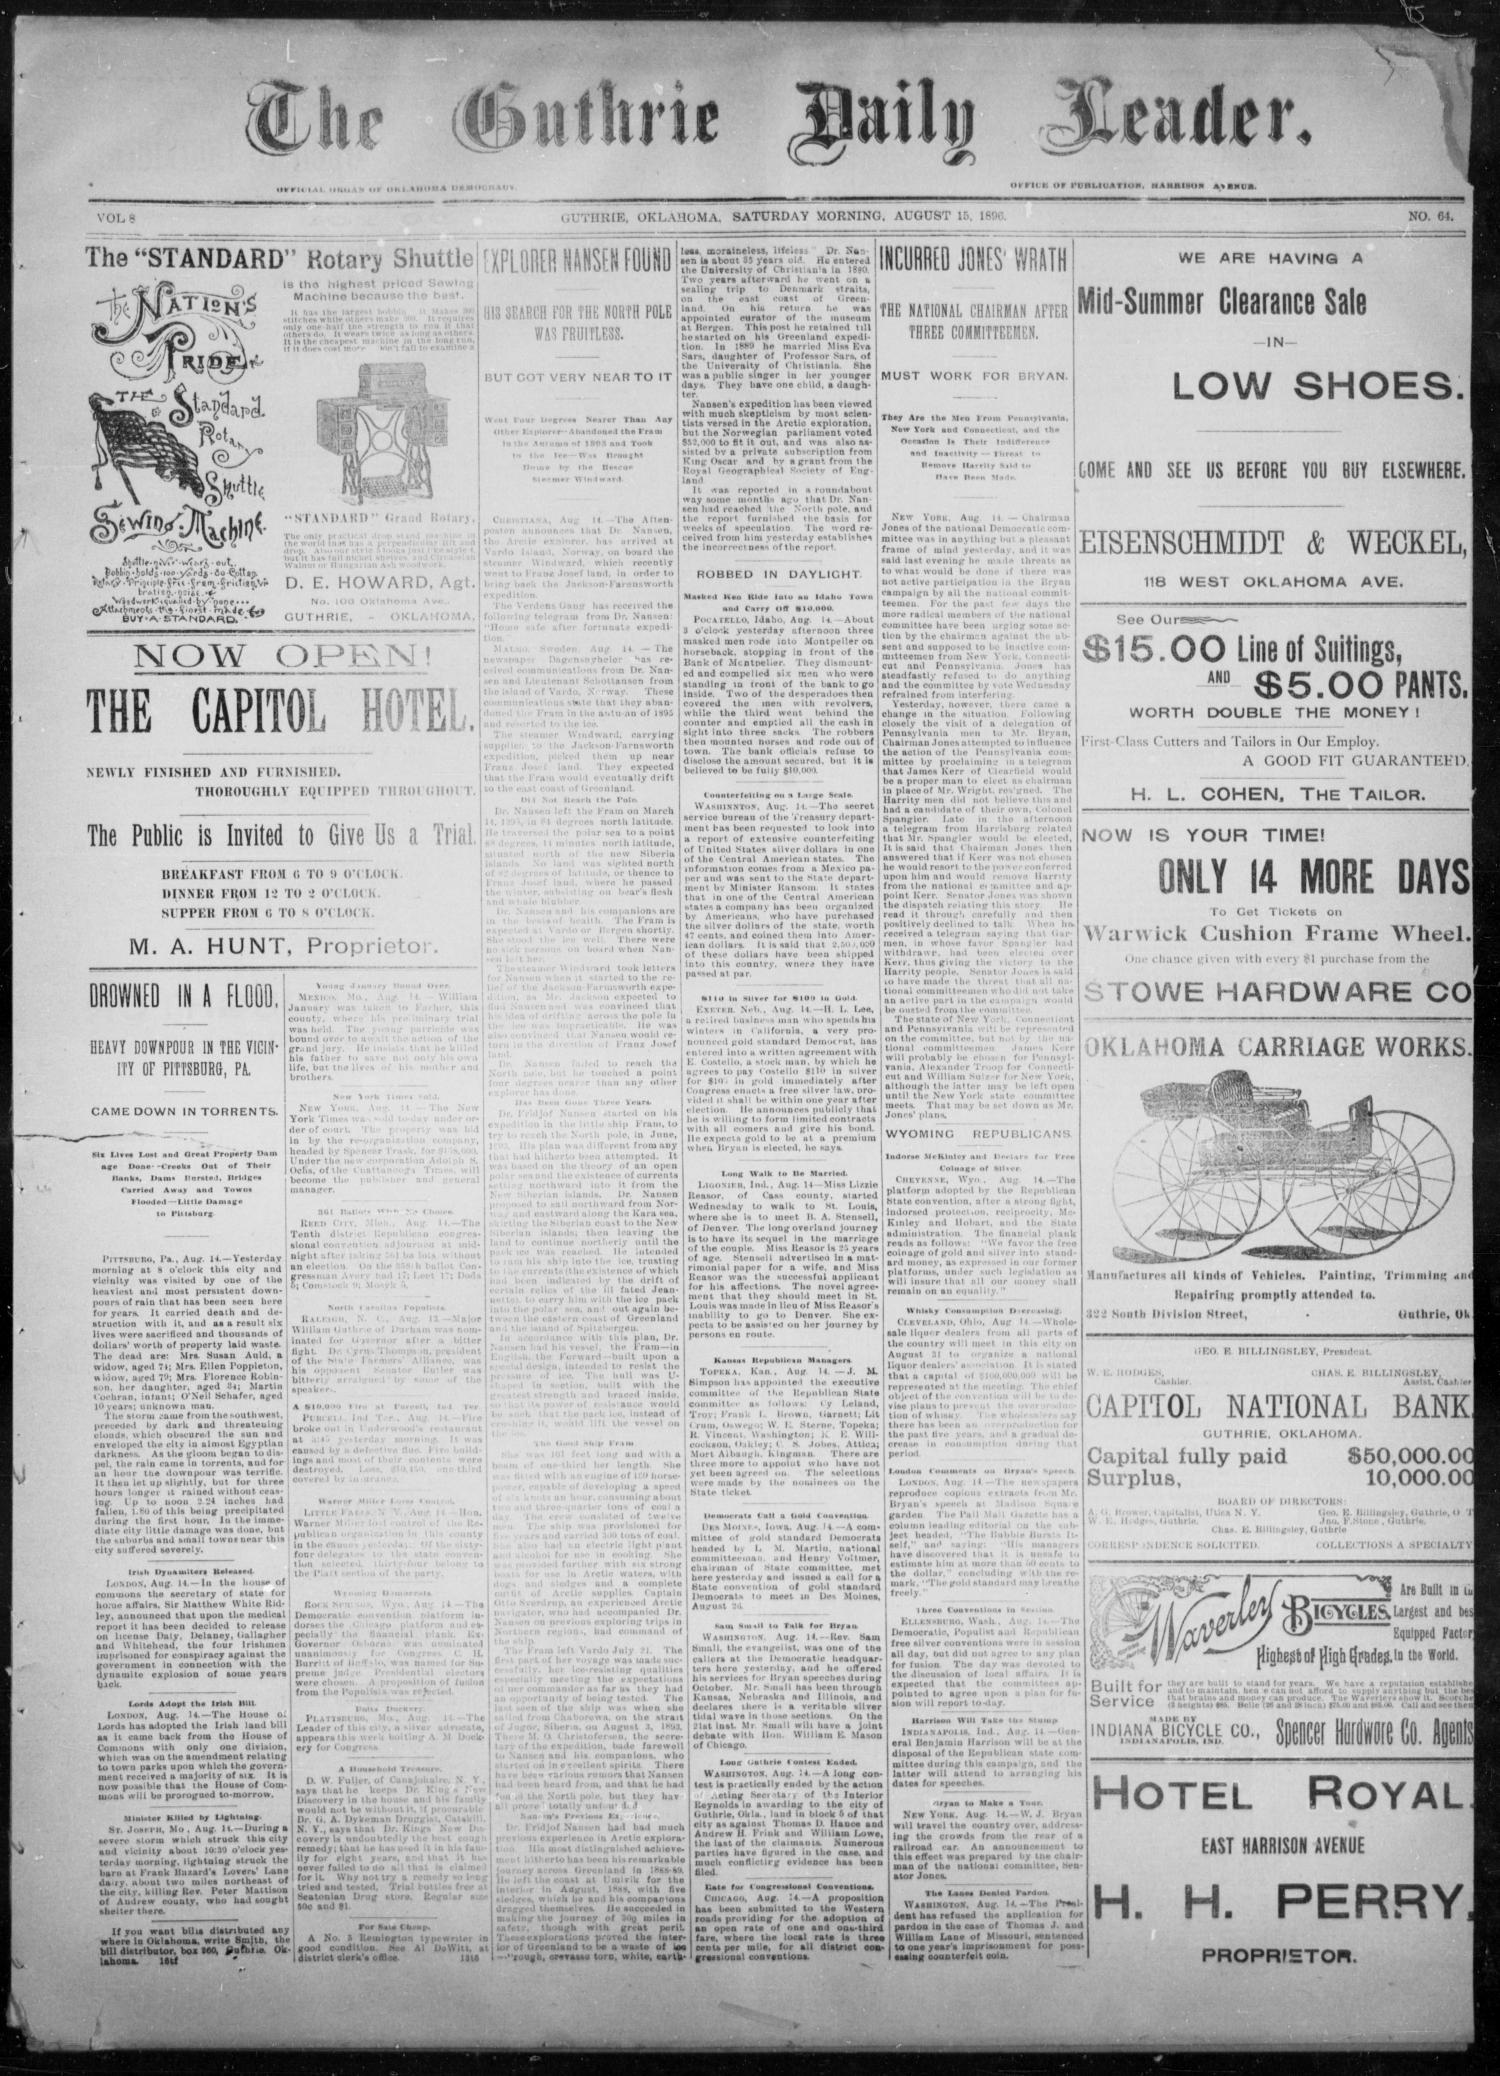 The Guthrie Daily Leader. (Guthrie, Okla.), Vol. 8, No. 64, Ed. 1, Saturday, August 15, 1896                                                                                                      [Sequence #]: 1 of 4